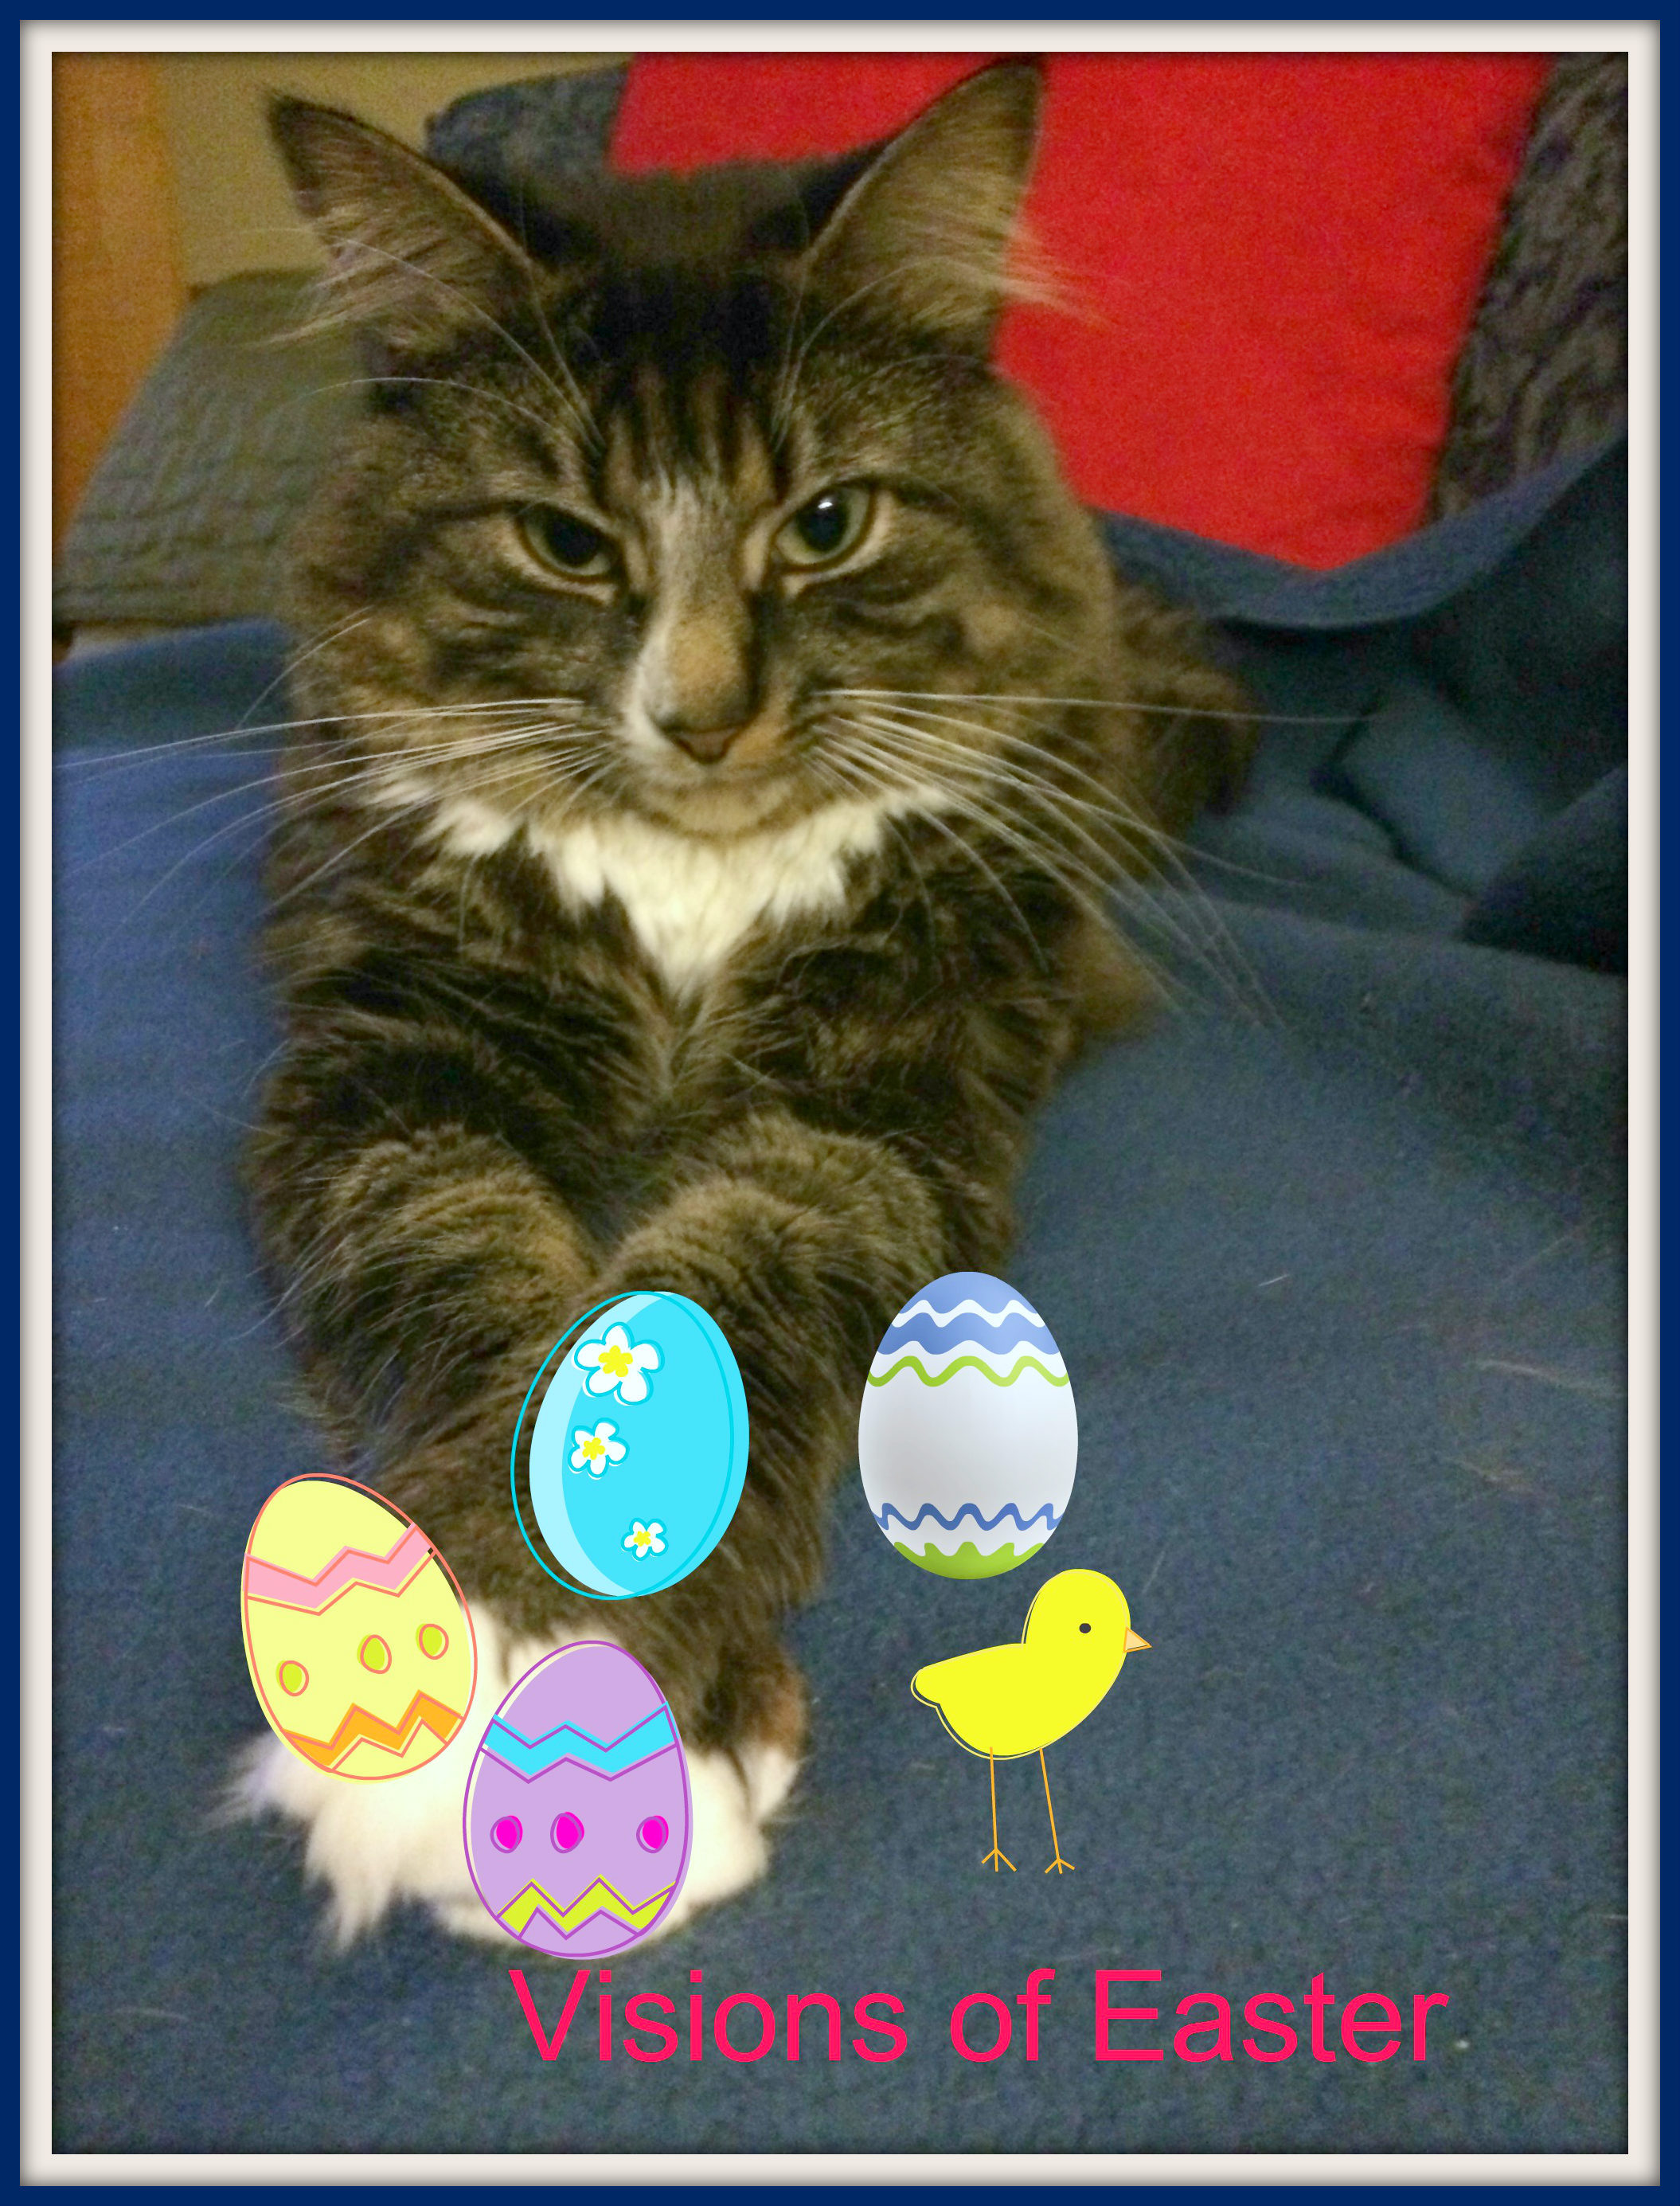 Cat and Easter